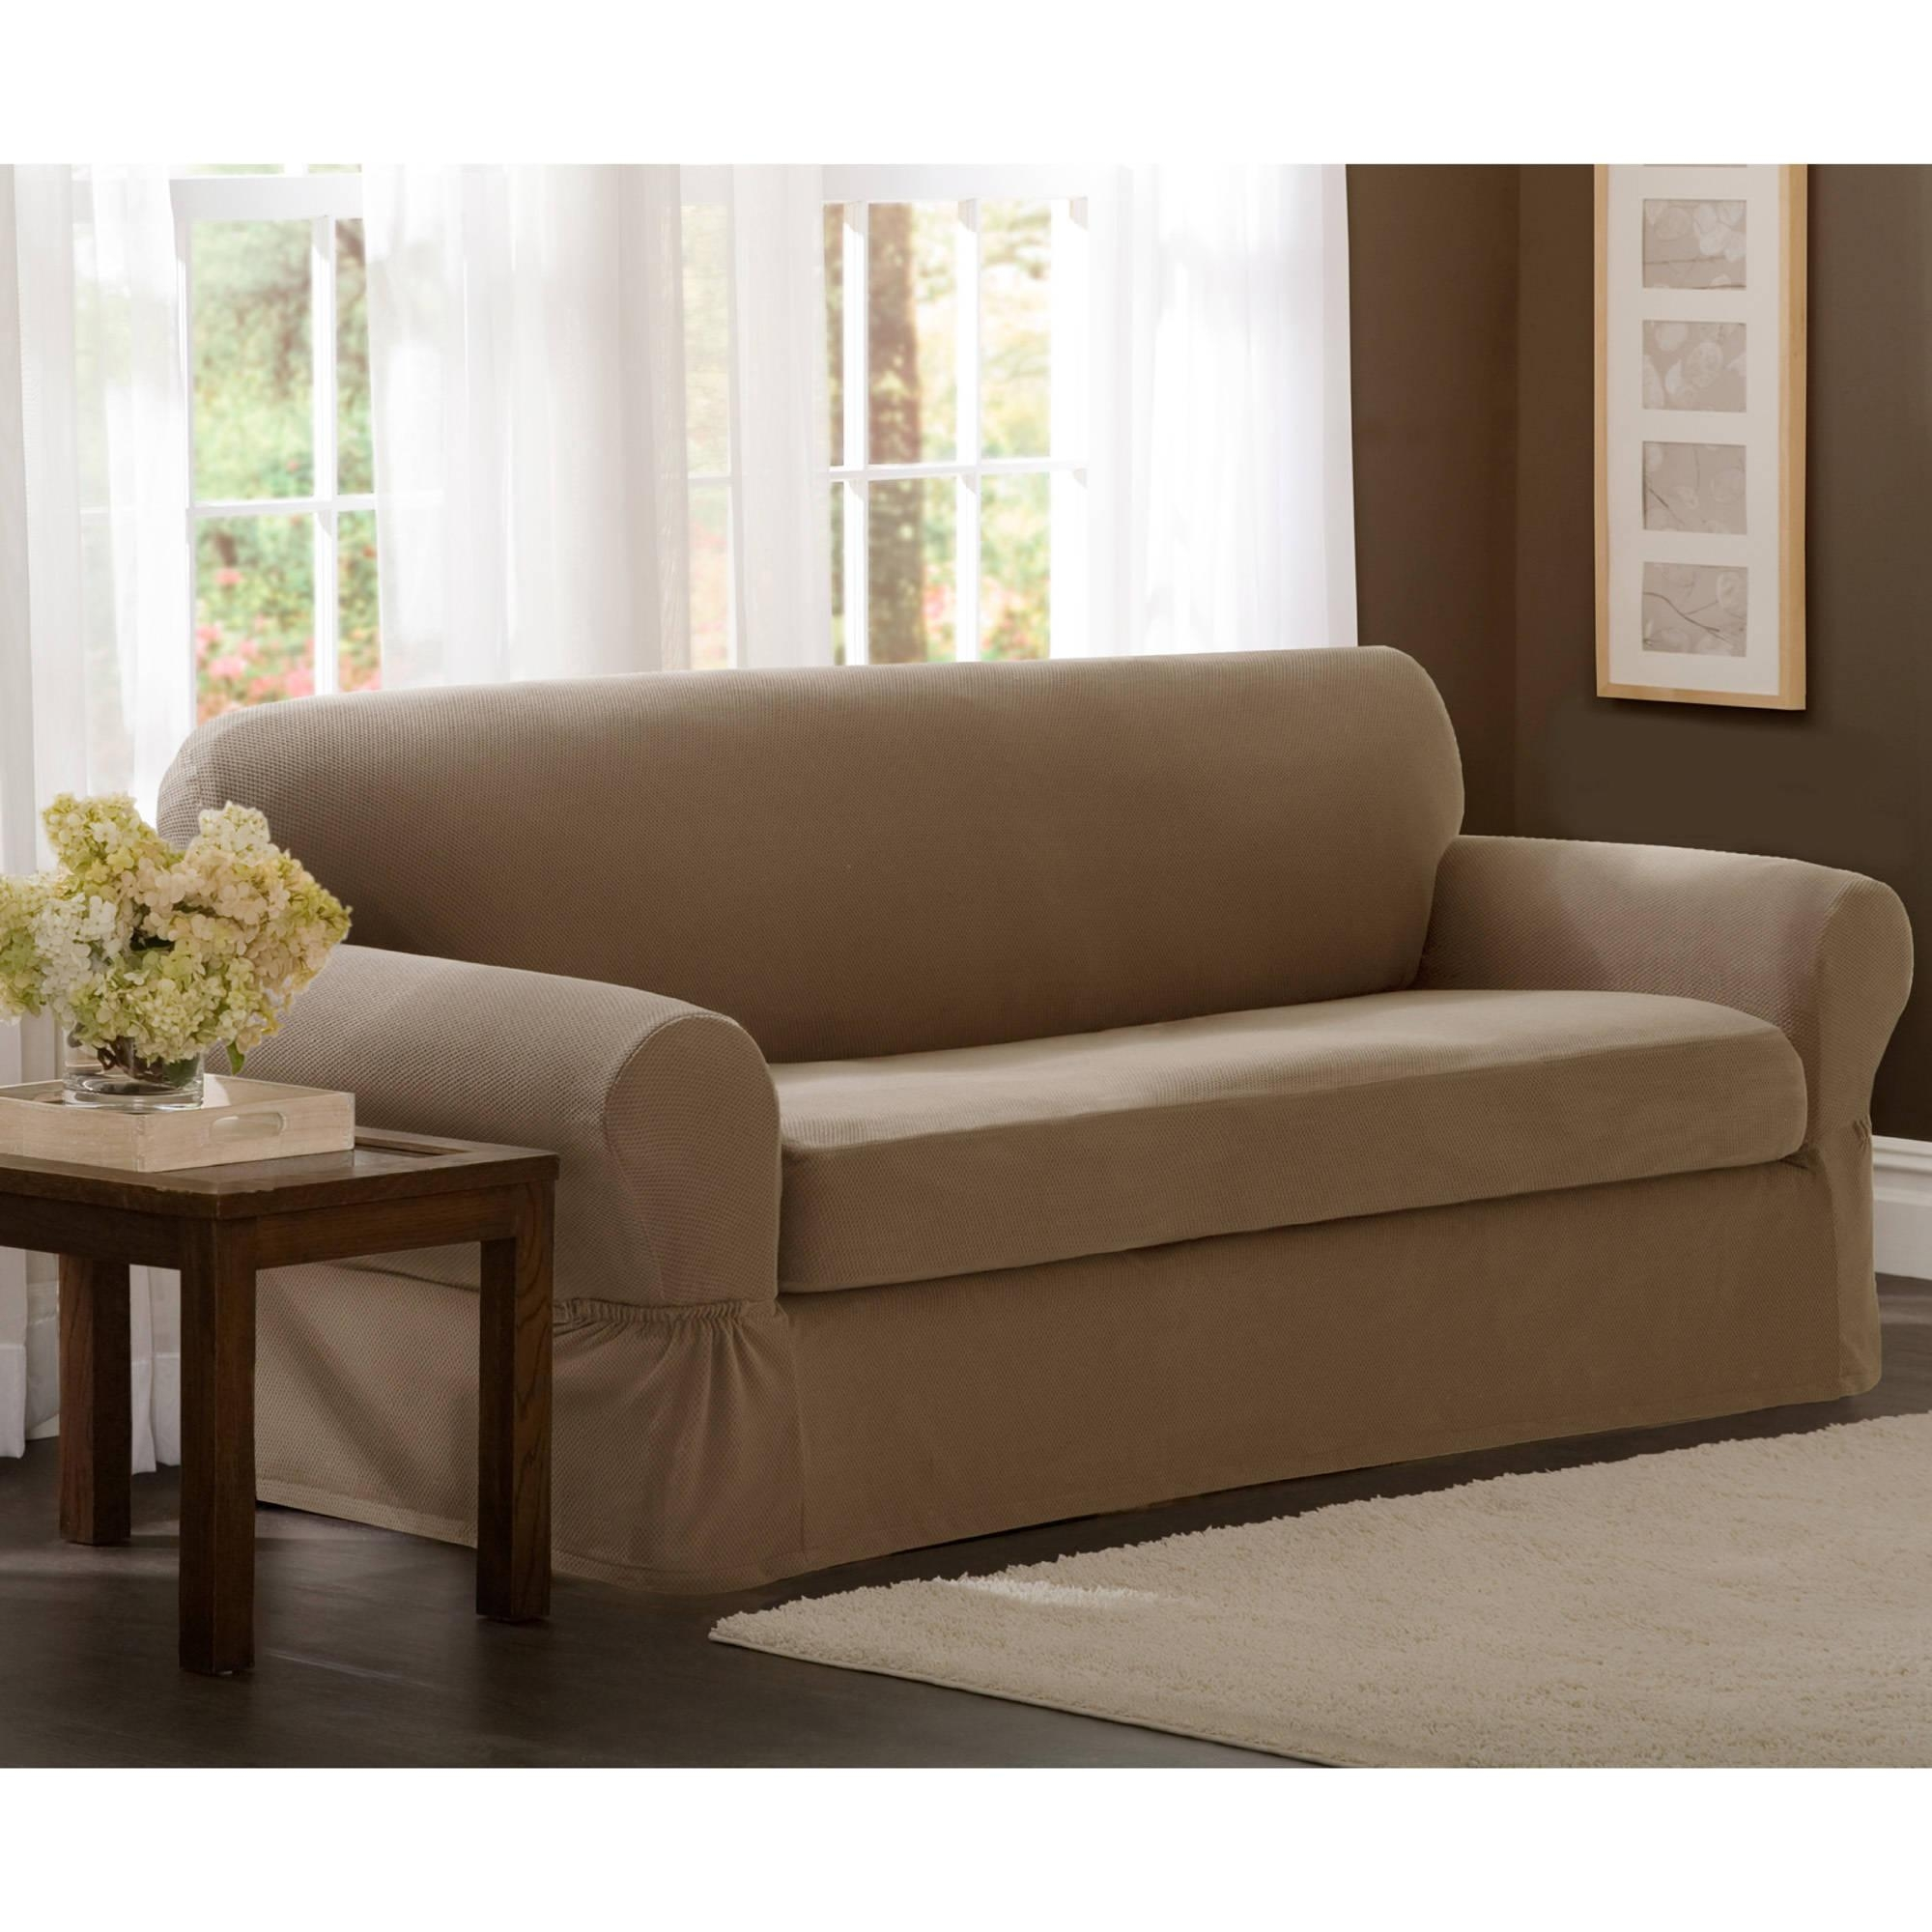 Maytex Stretch 2 Piece Sofa Slipcover – Walmart With 3 Piece Sofa Covers (View 7 of 20)